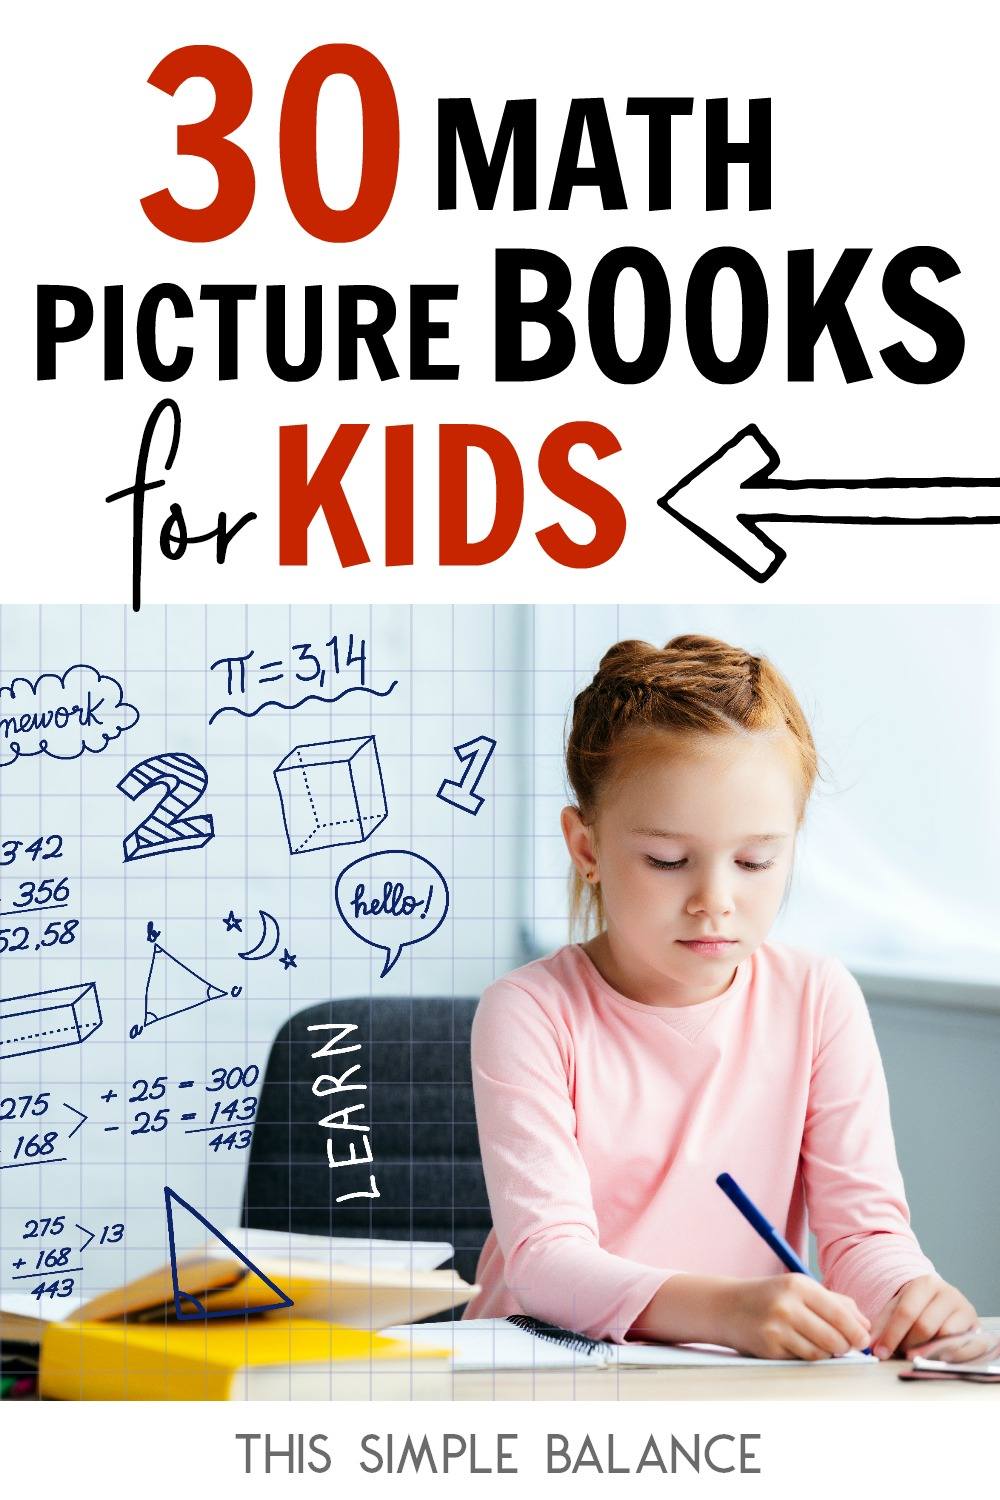 30 Math Books for Kids: perfect for helping elementary school kids make important math connections and build math confidence.